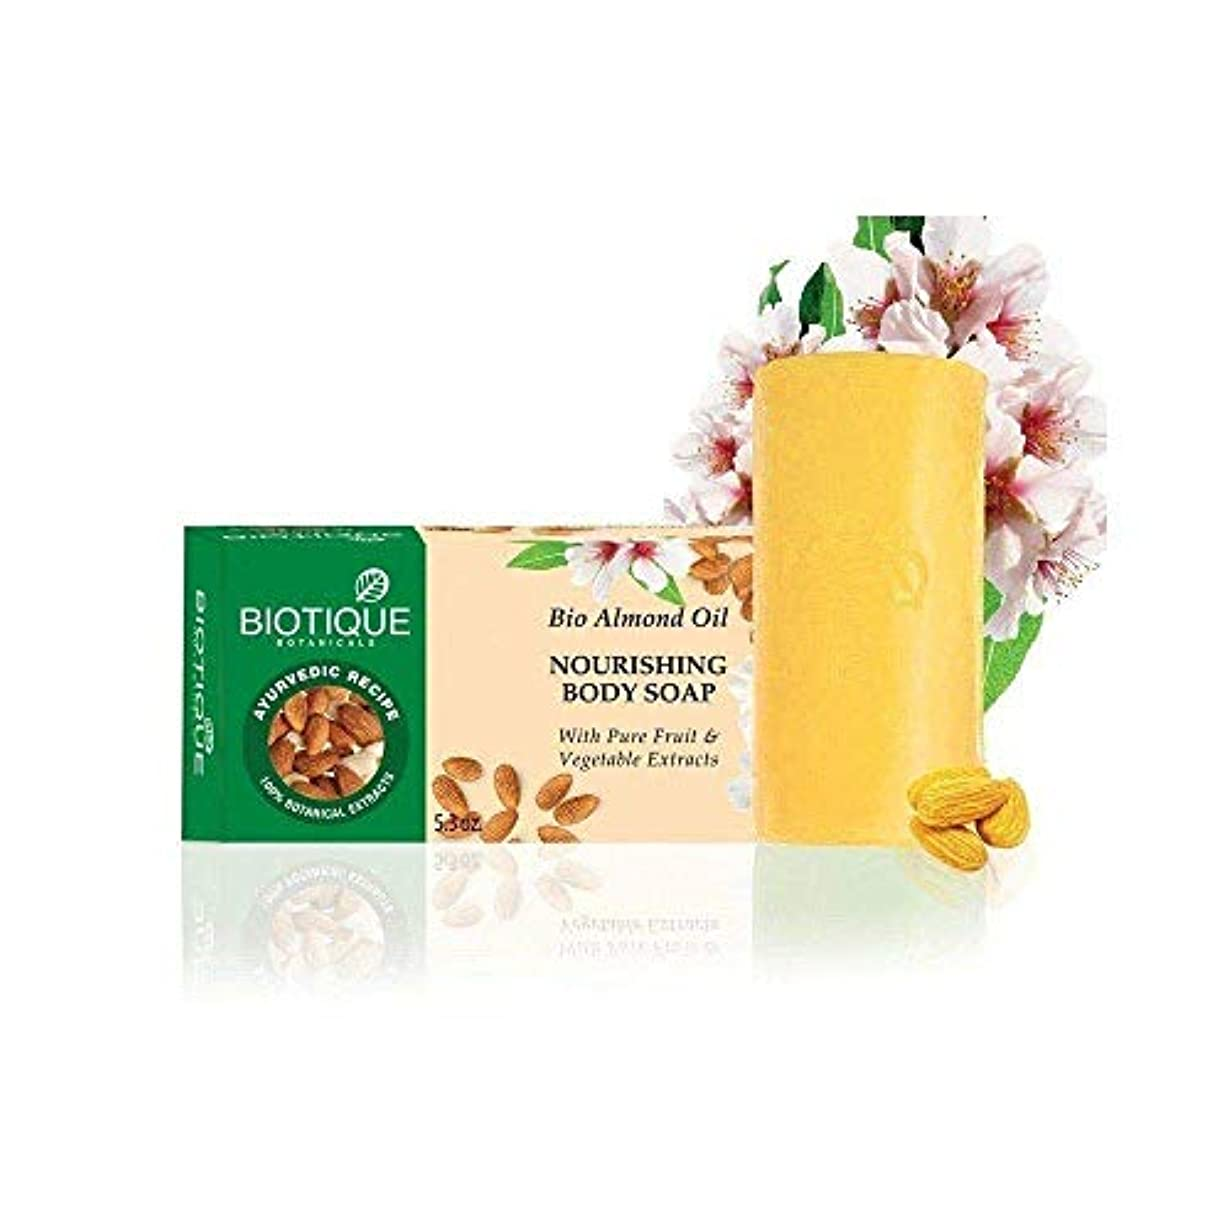 妊娠した予想する手順Biotique Bio Almond Oil Nourishing Body Soap - 150g (Pack of 2) wash Impurities Biotique Bio Almond Oilナリッシングボディソープ...